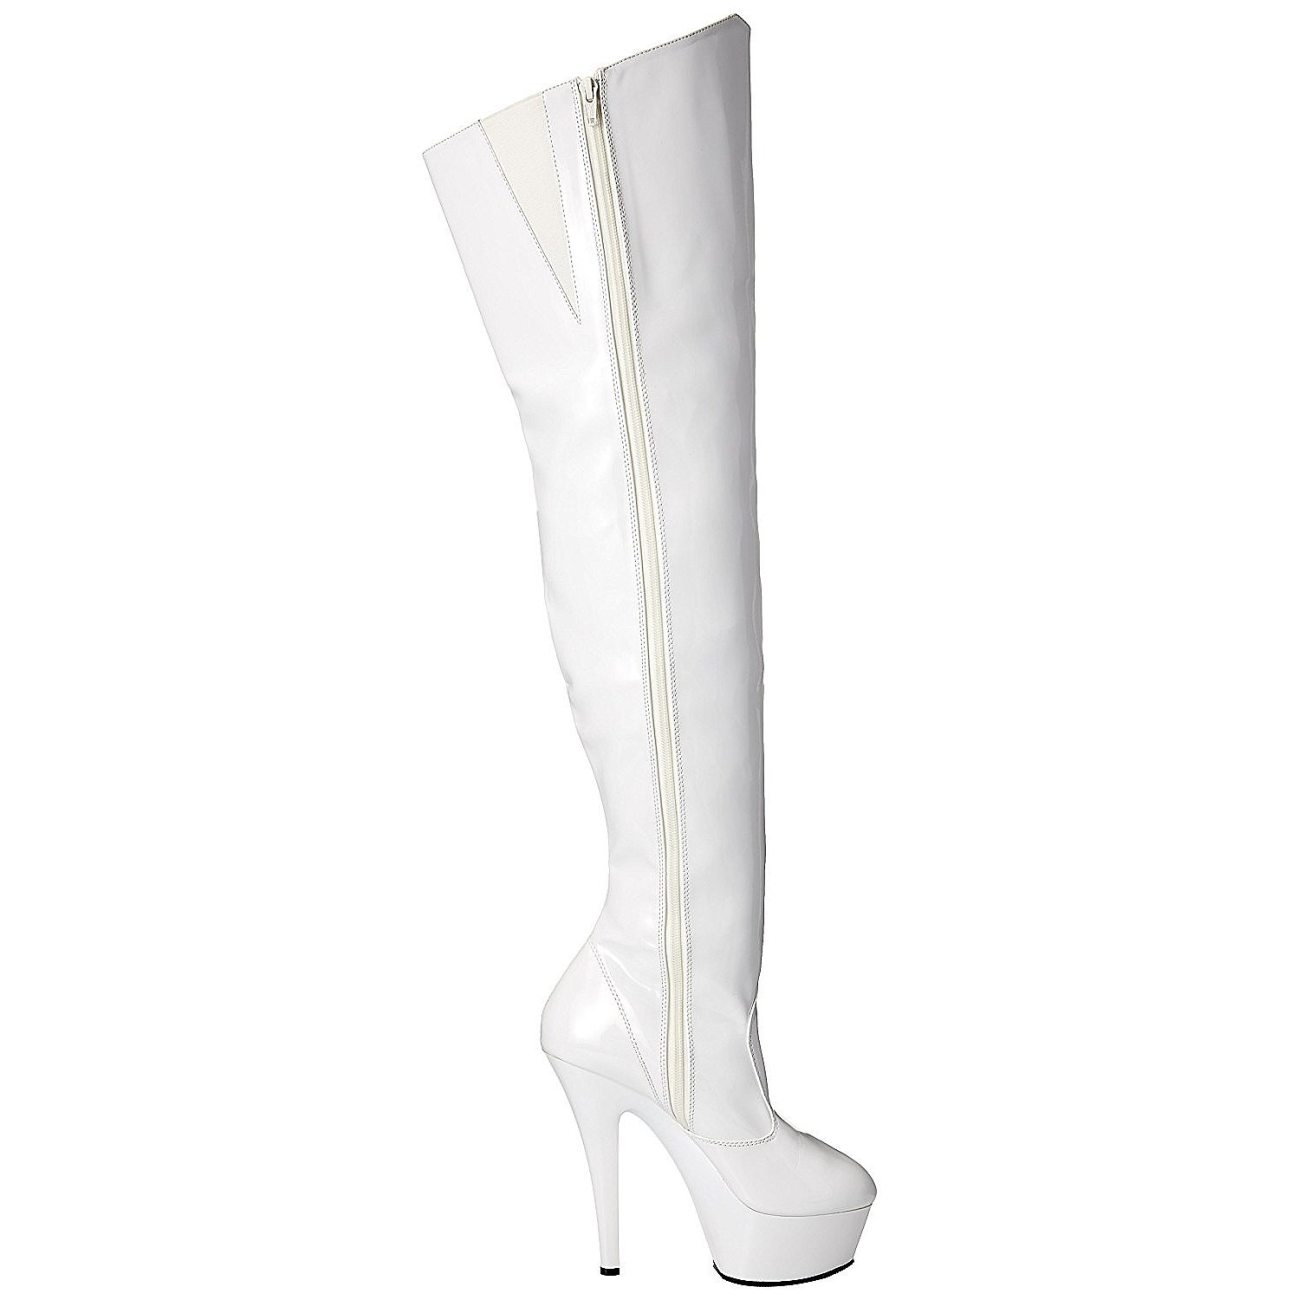 Weiss 15 cm KISS 3010 overknee stiefel mit plateausohle